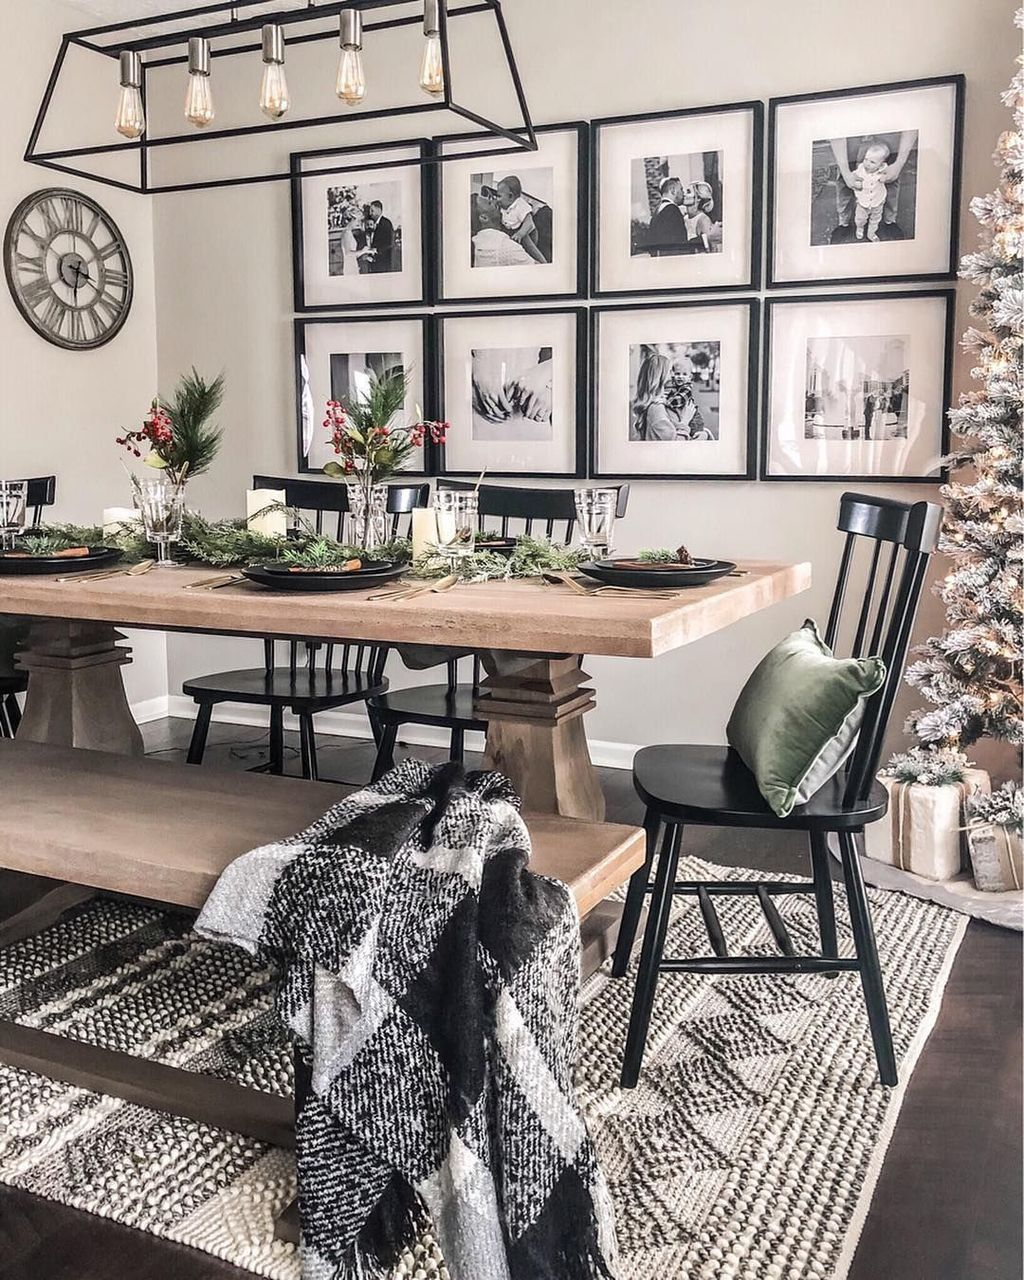 44 Stunning Modern Dining Room Furniture Ideas In 2020 Farm House Living Room Black Dining Room White Dining Room